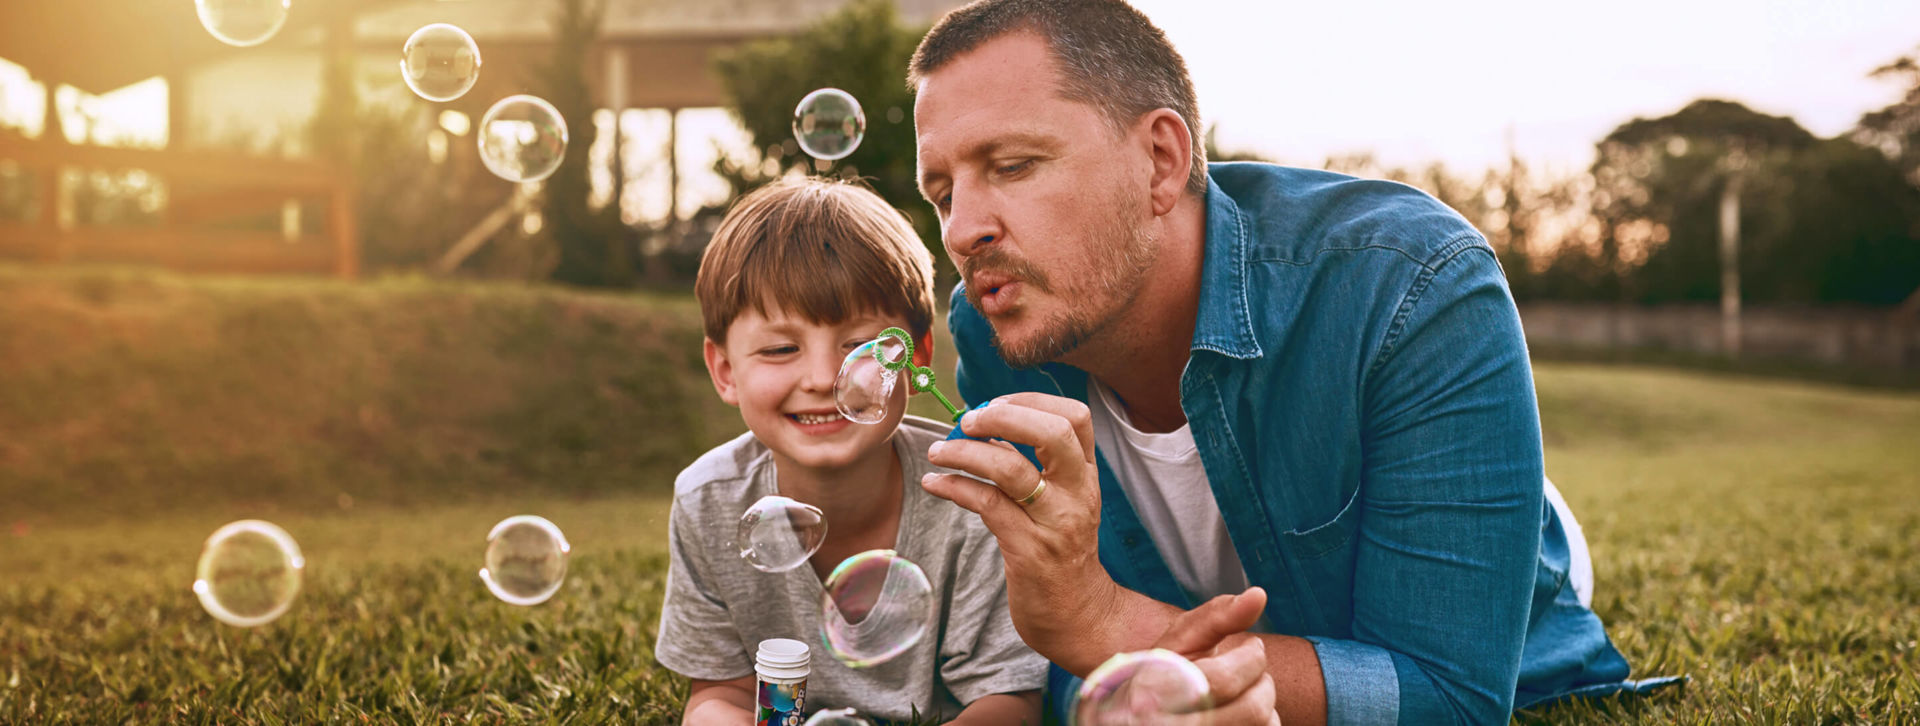 Father and son blowing bubbles in Grass